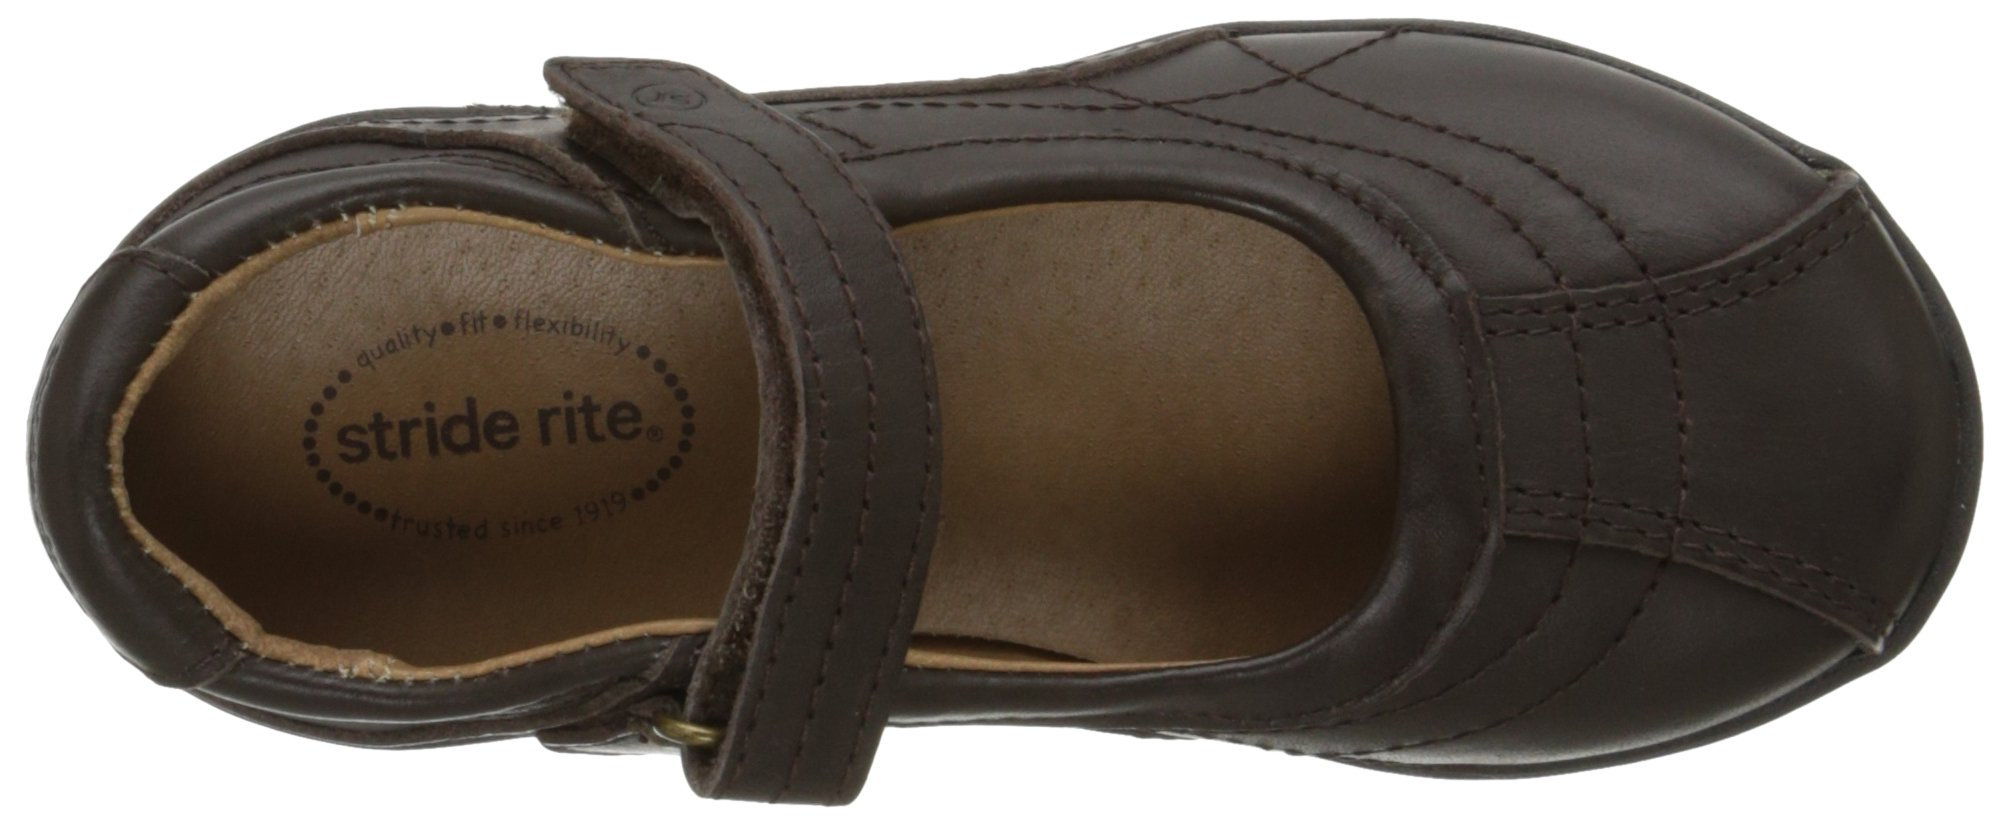 Stride Rite Claire Mary Jane (Toddler/Little Kid/Big Kid),Brown,13 M US Little Kid by Stride Rite (Image #8)